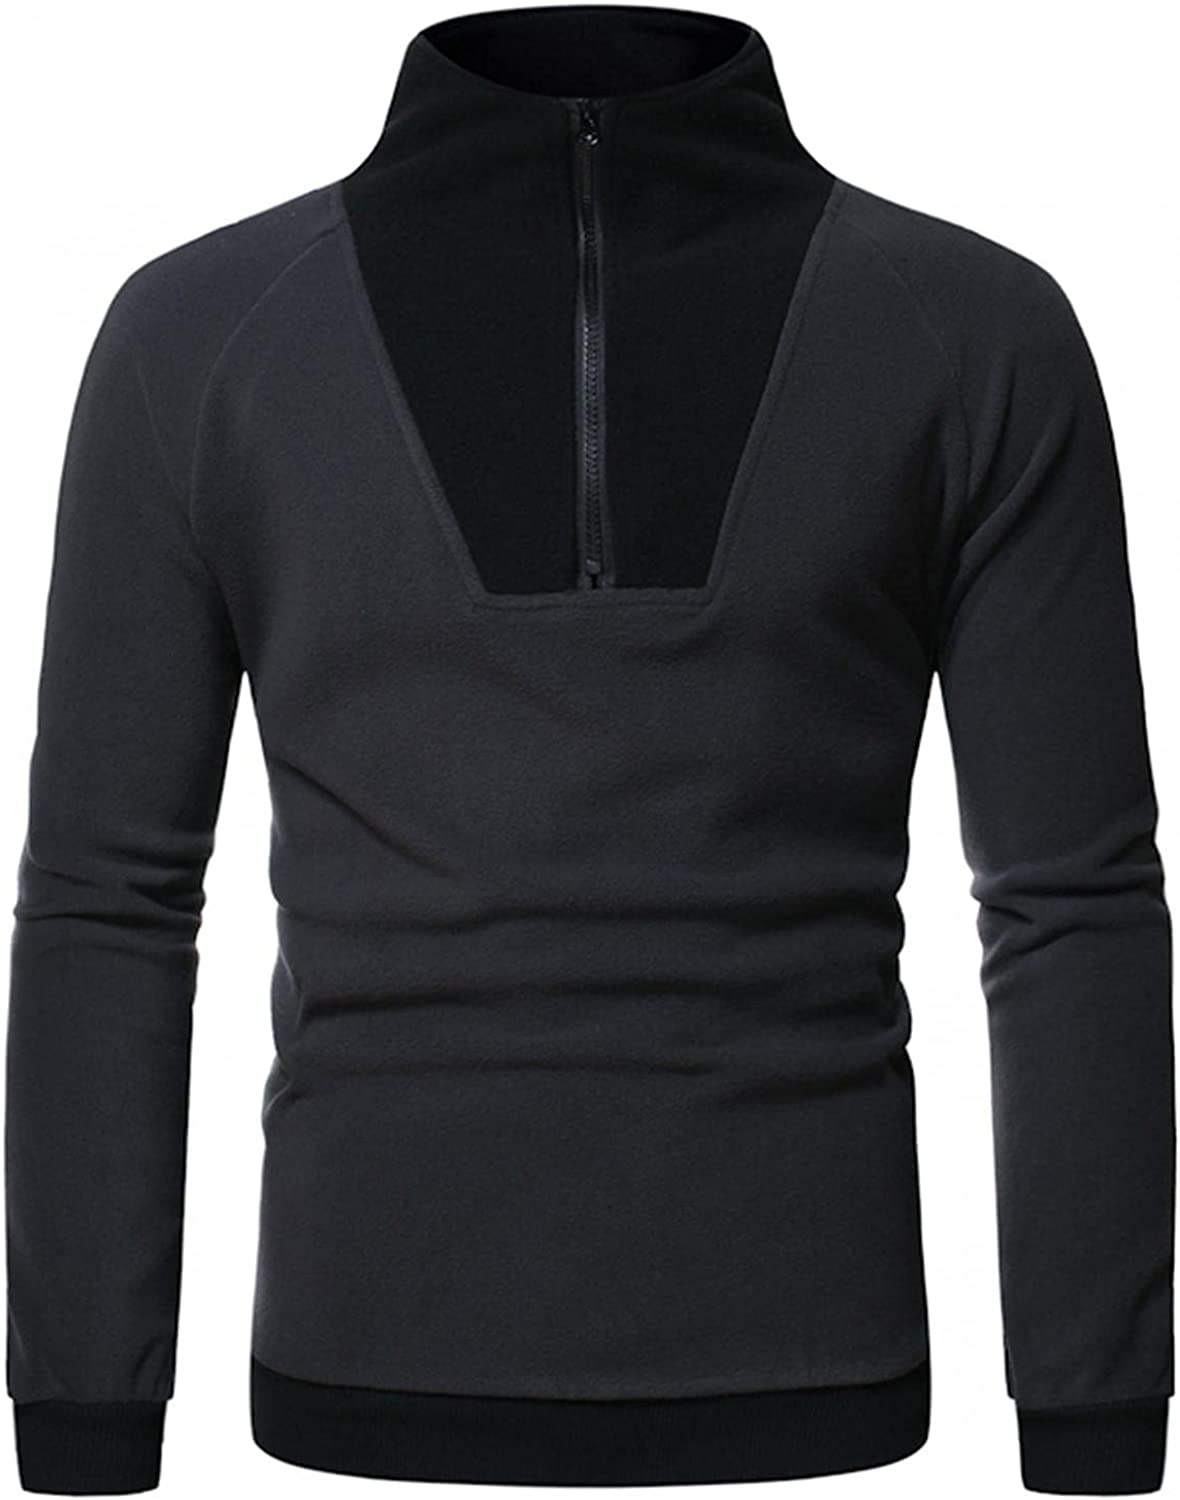 Huangse Men's Zip up Jacket Plain Long Sleeve Pullover Sweatshirts Casual Workout Active Sport Sweaters Tee Shirts Tops